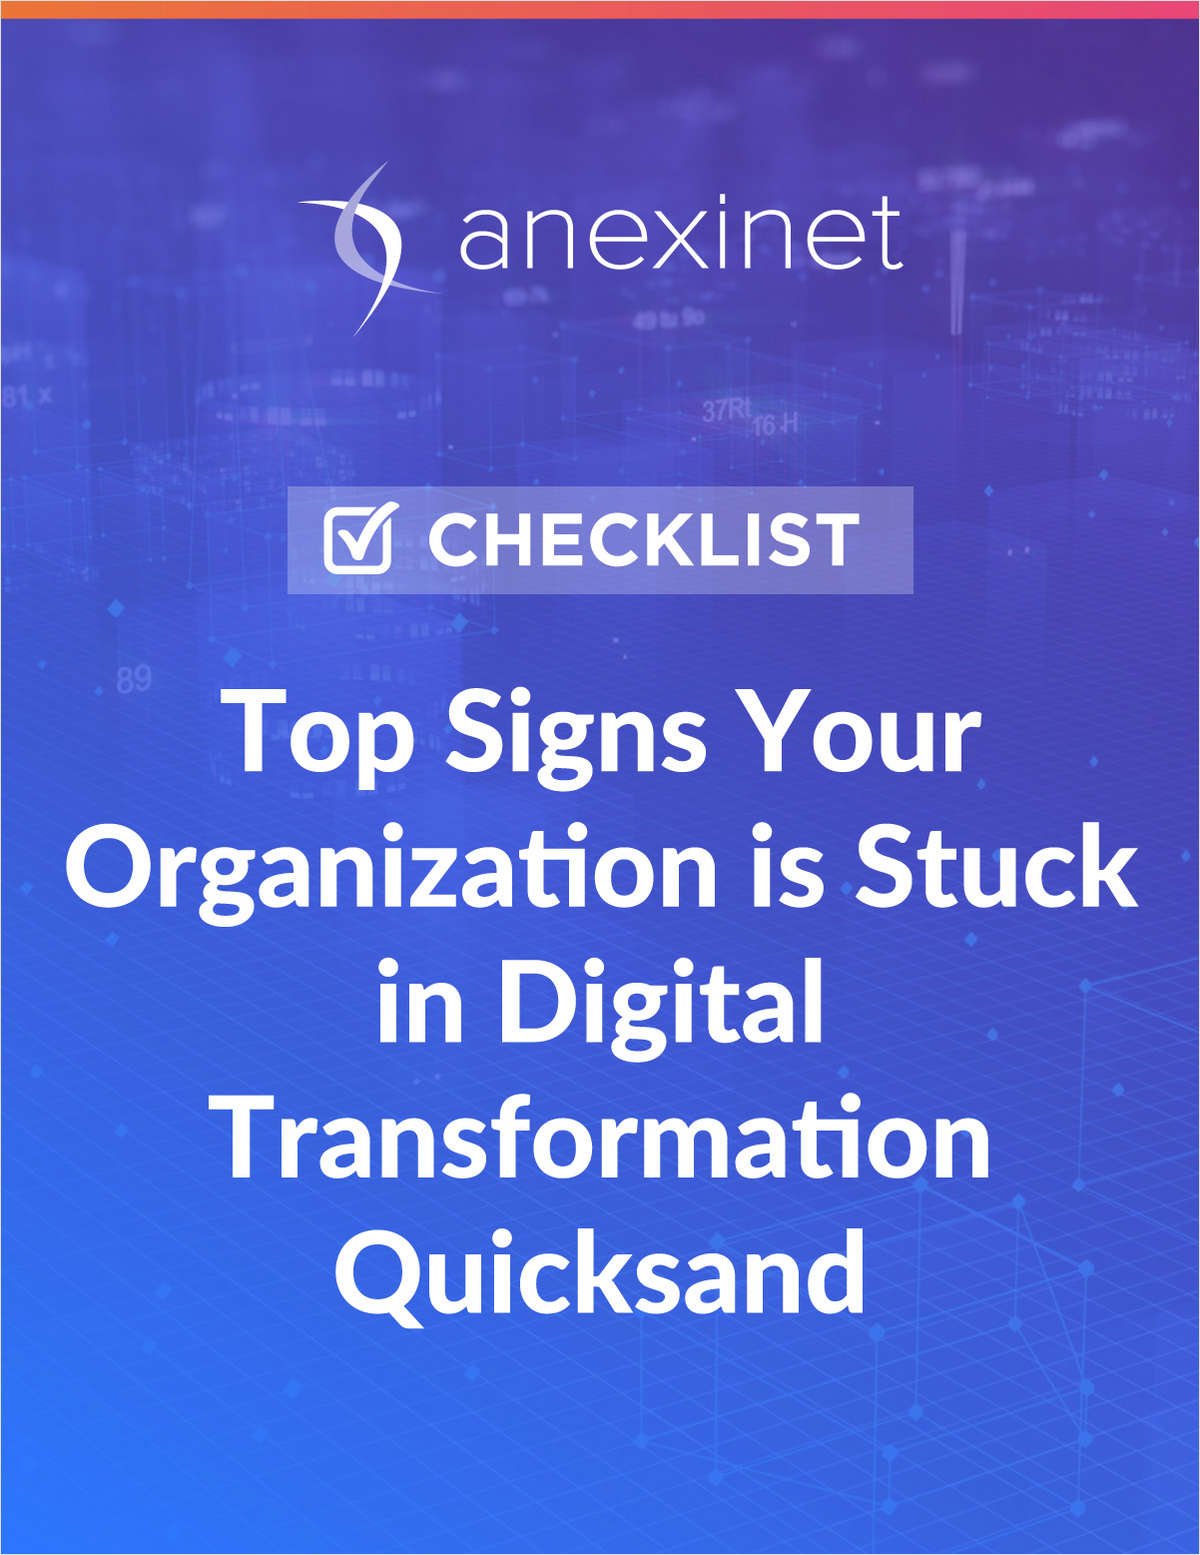 Top Signs Your Organization is Stuck in Digital Transformation Quicksand